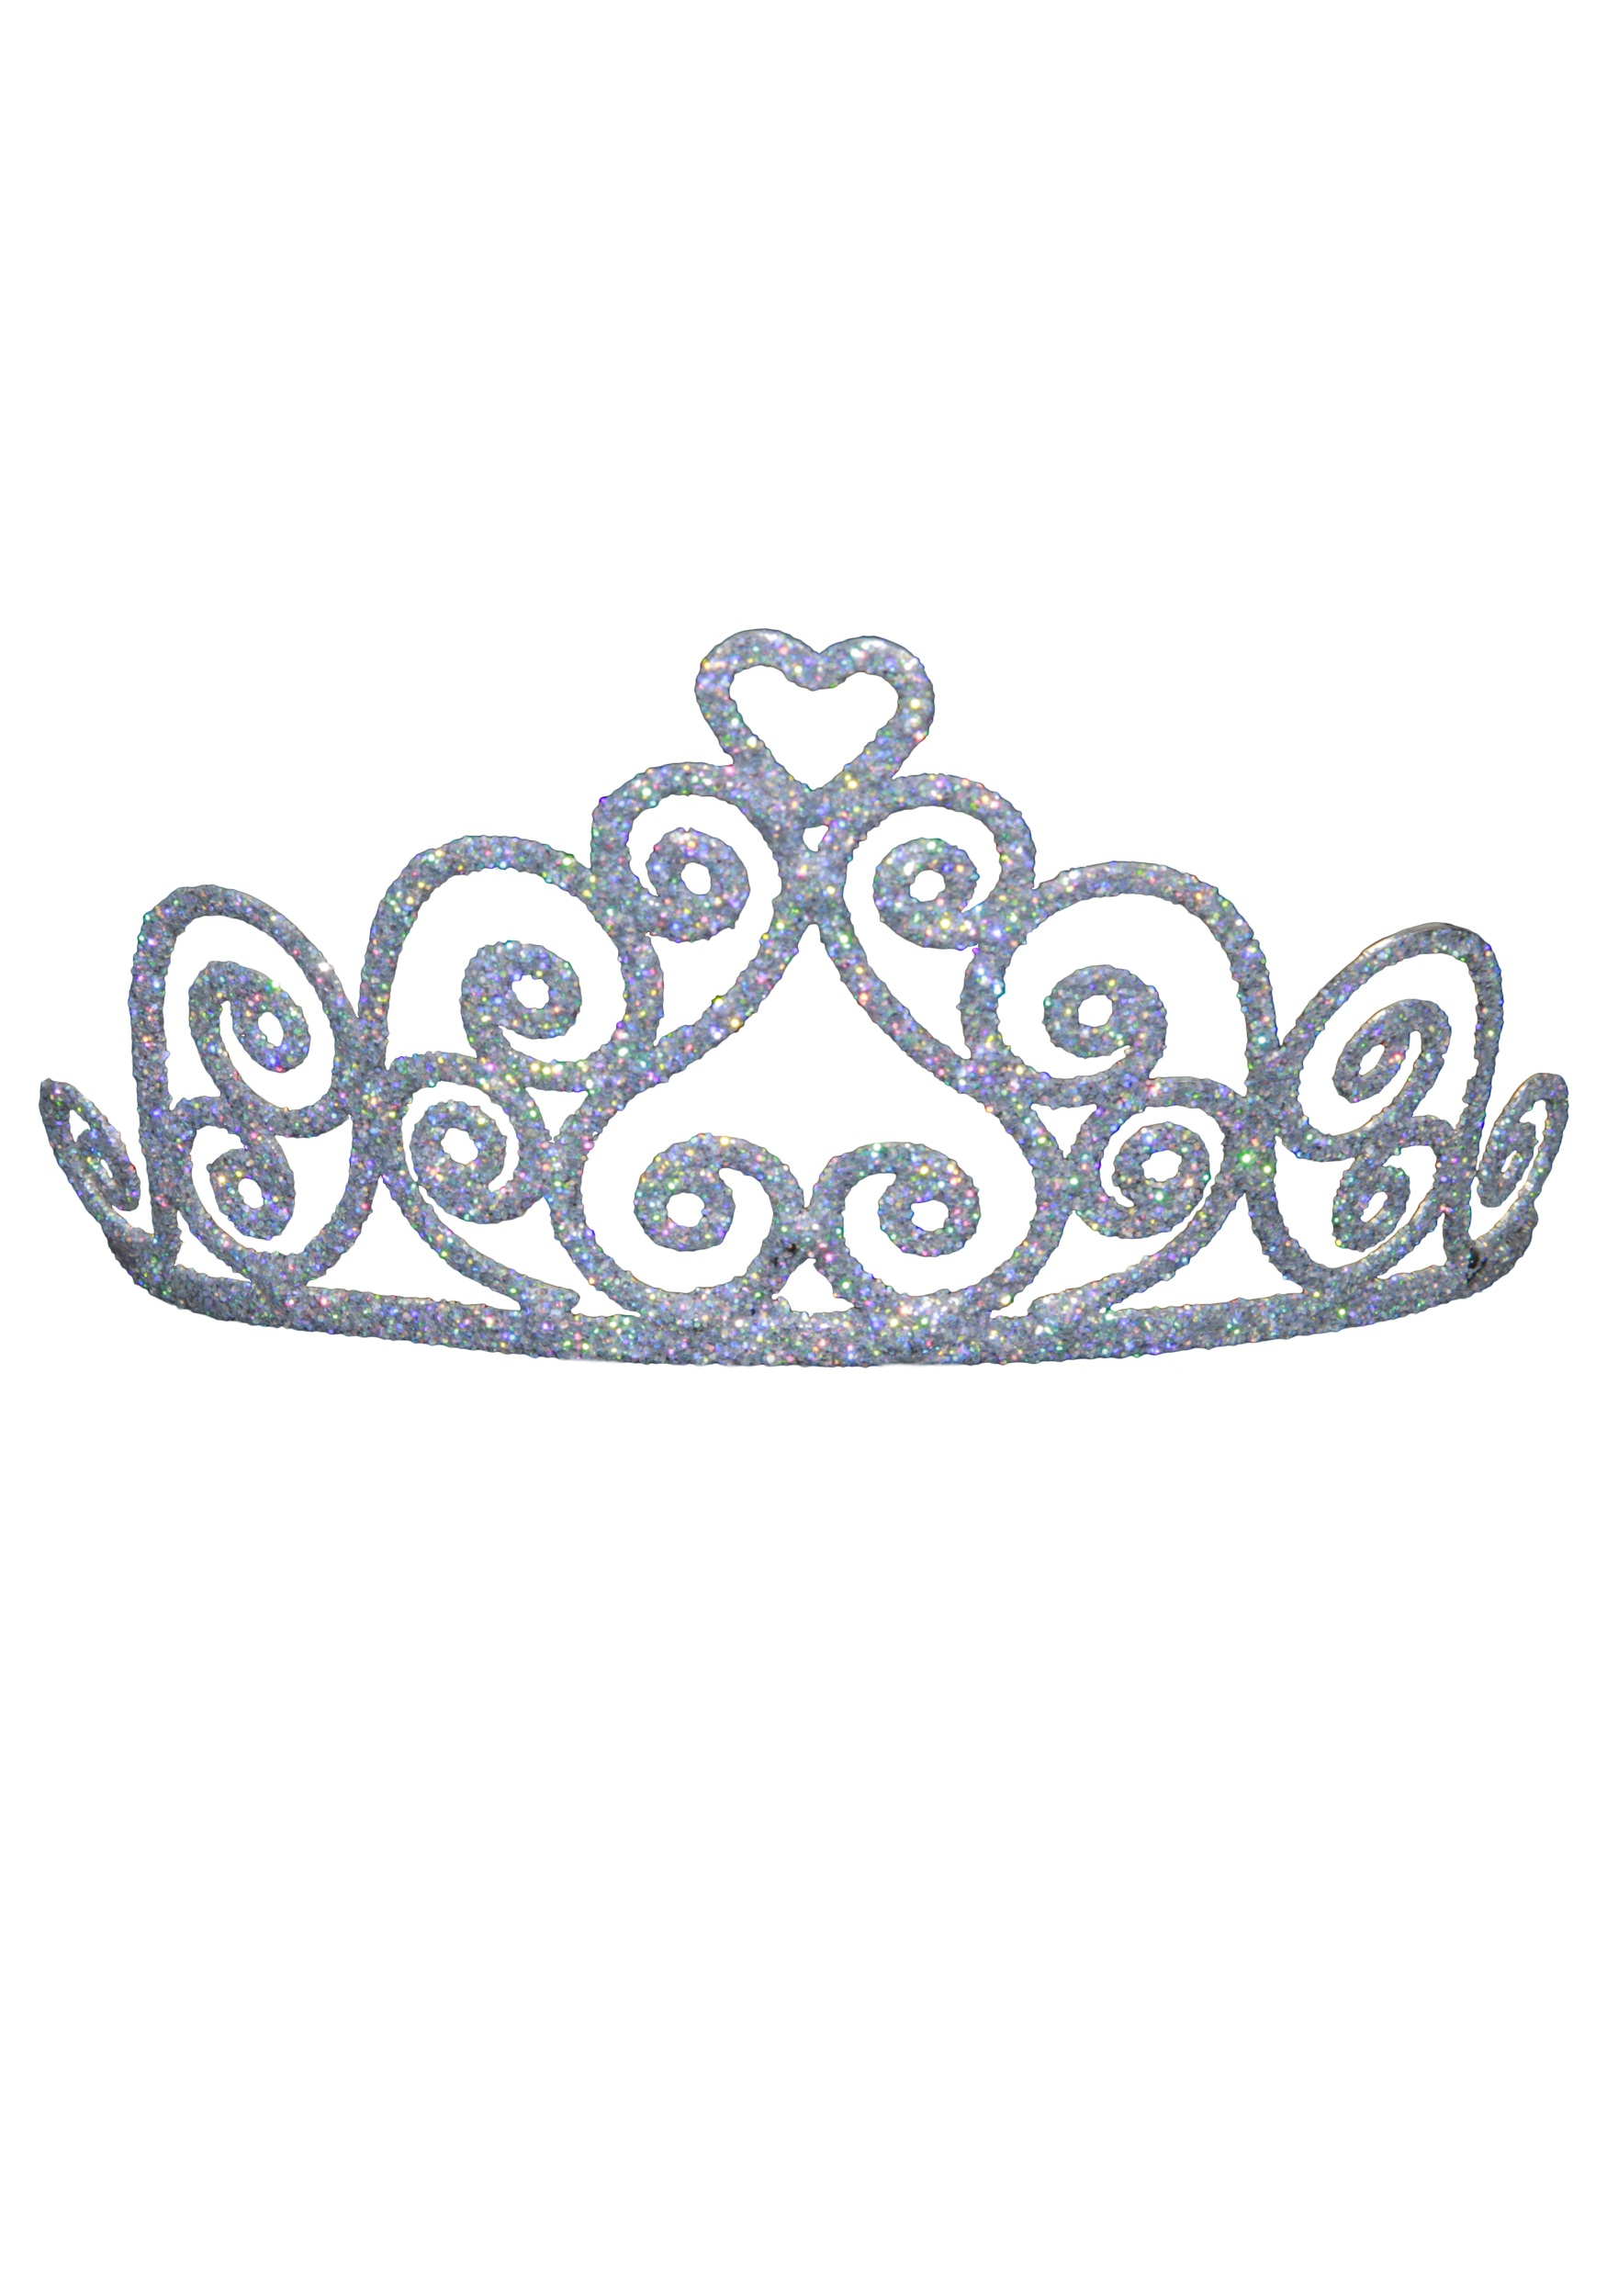 graphic freeuse stock Diamond wikiclipart . Tiara clipart.